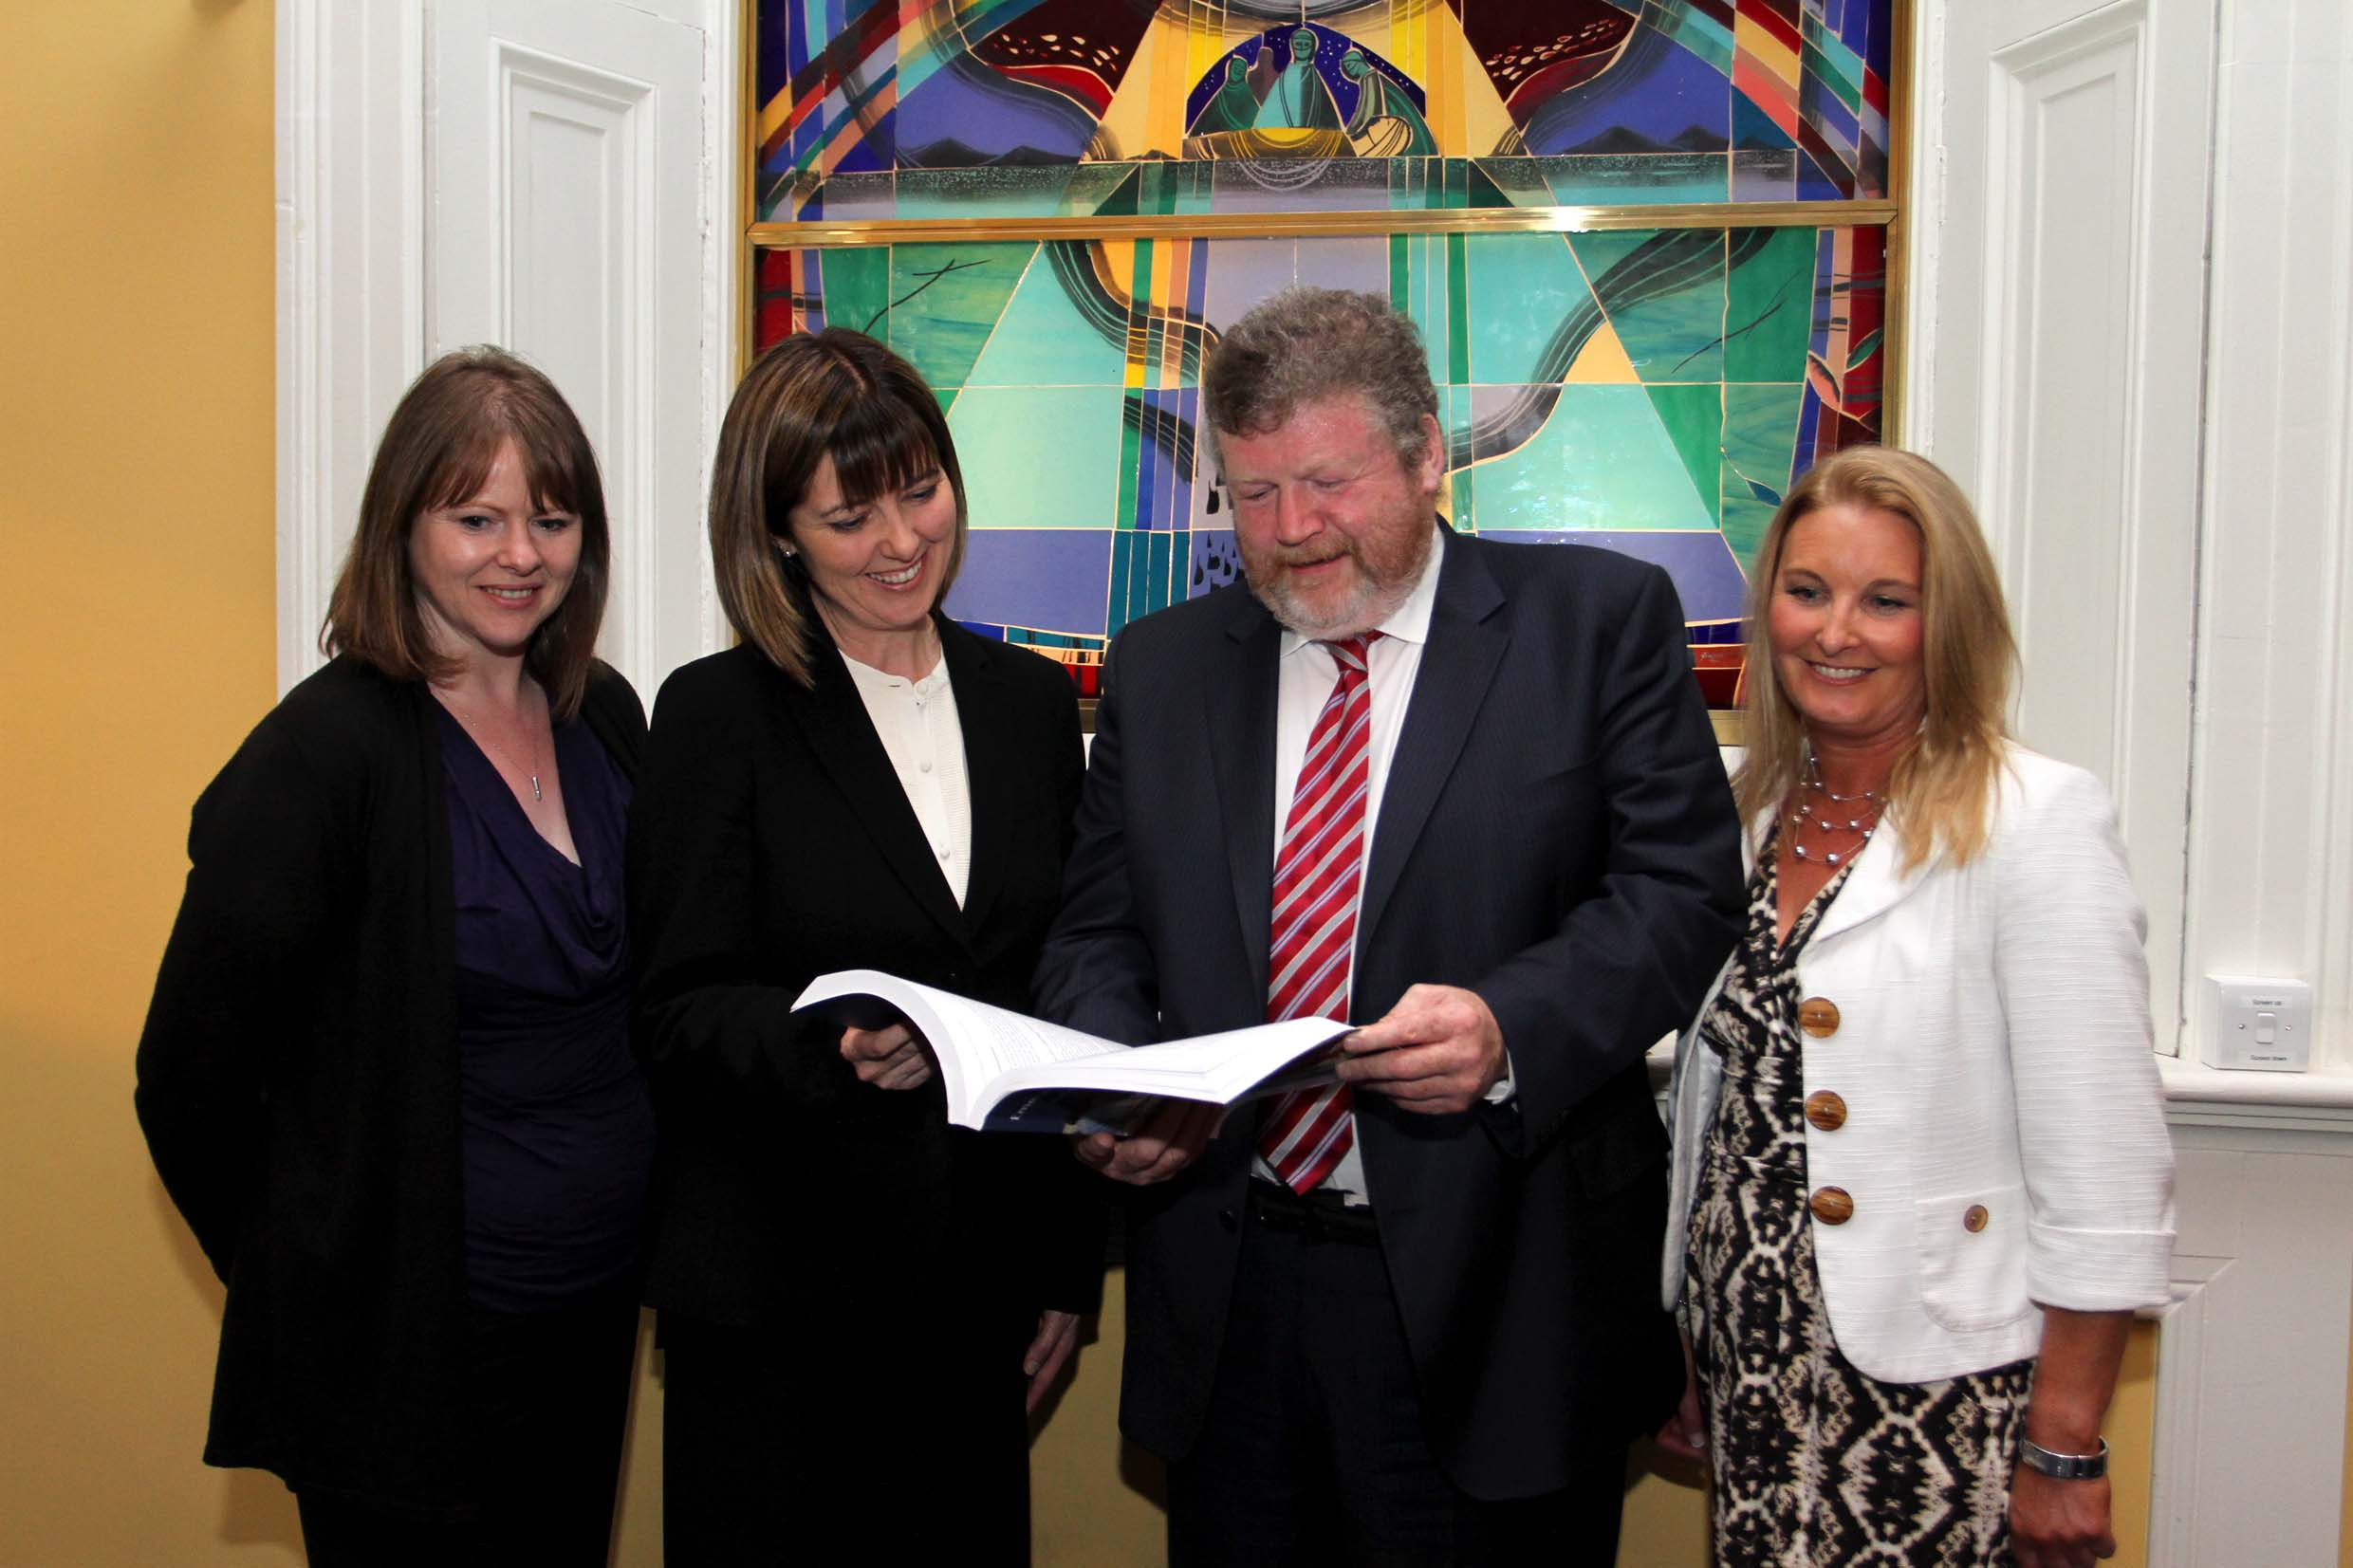 Susanna Byrne, Dr Una Geary, Minister Reilly and Valerie Small